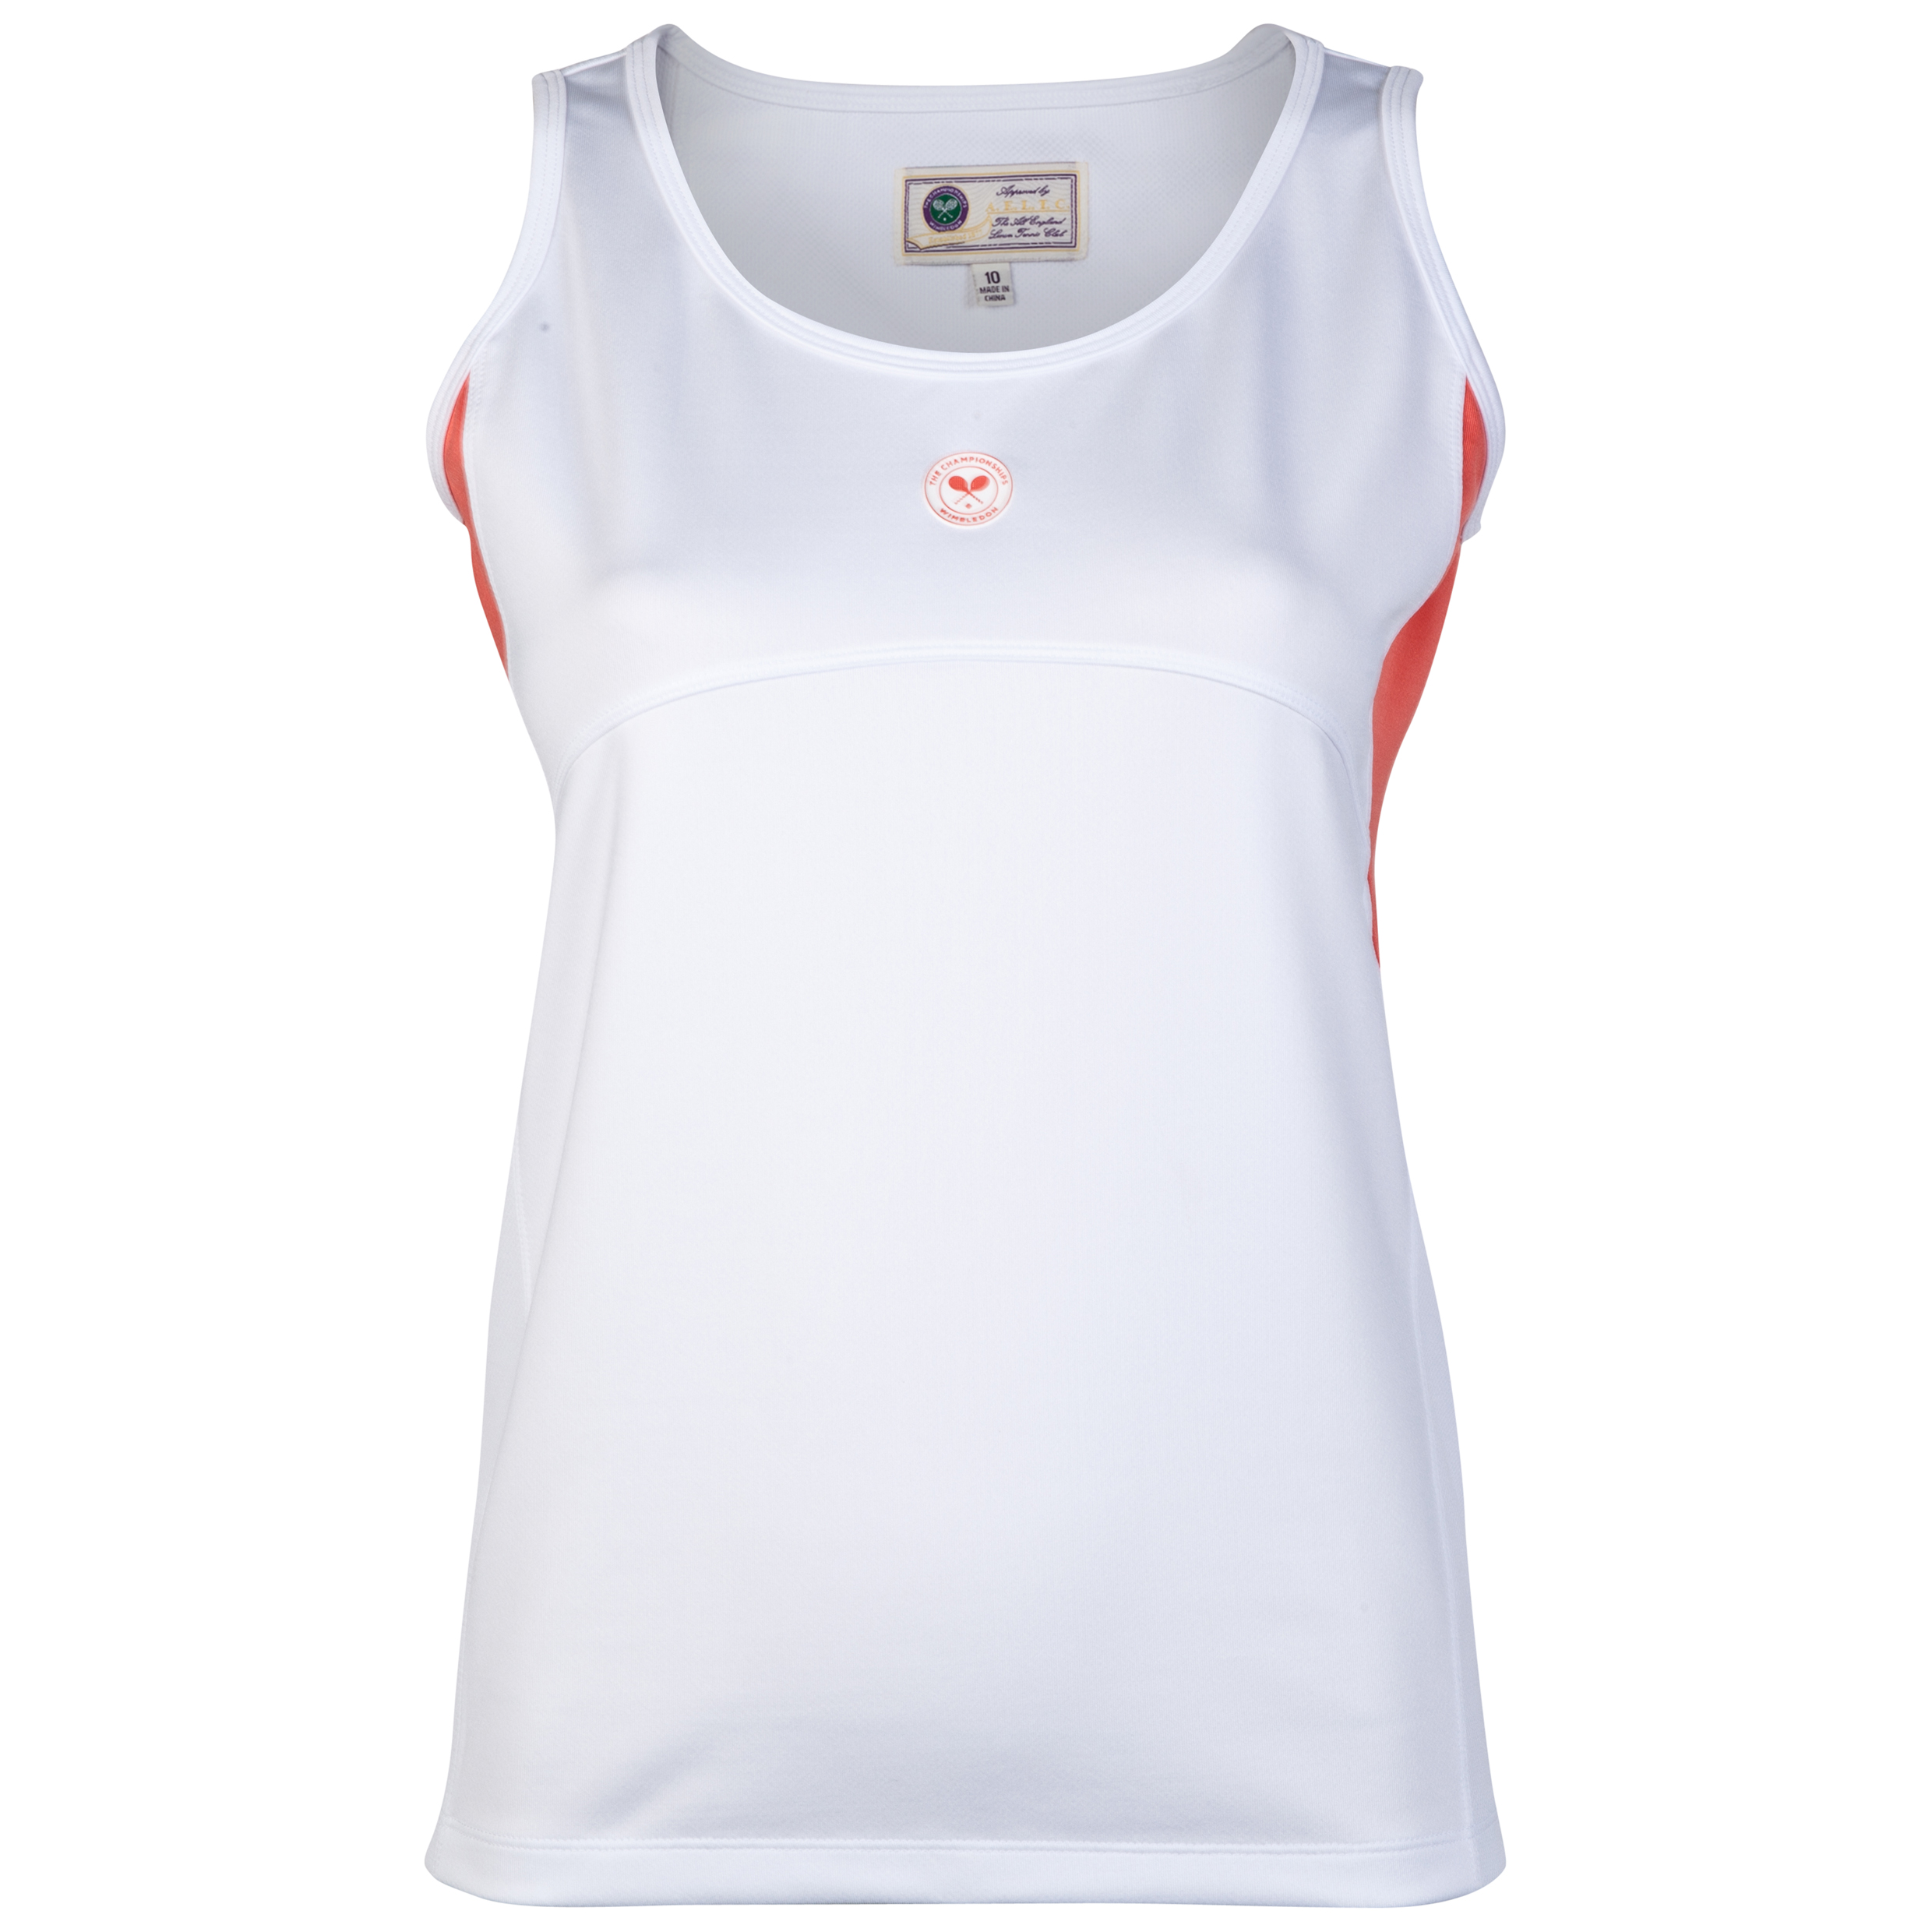 Wimbledon Sleeveless Top - Ladies White